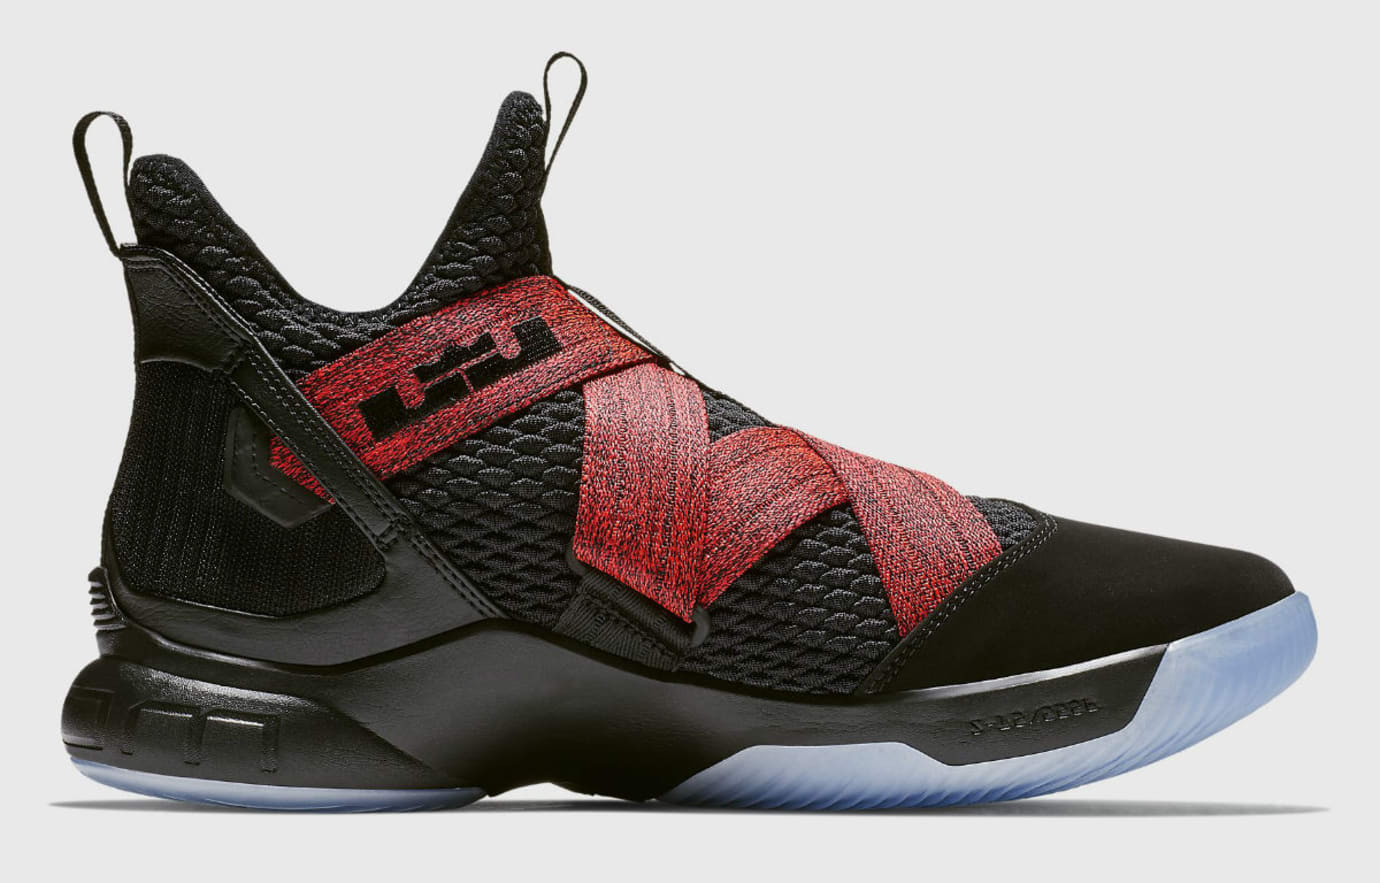 on sale ad224 ced2f Nike LeBron Soldier 12 XII Bred Release Date AO2609-003 Pair ...